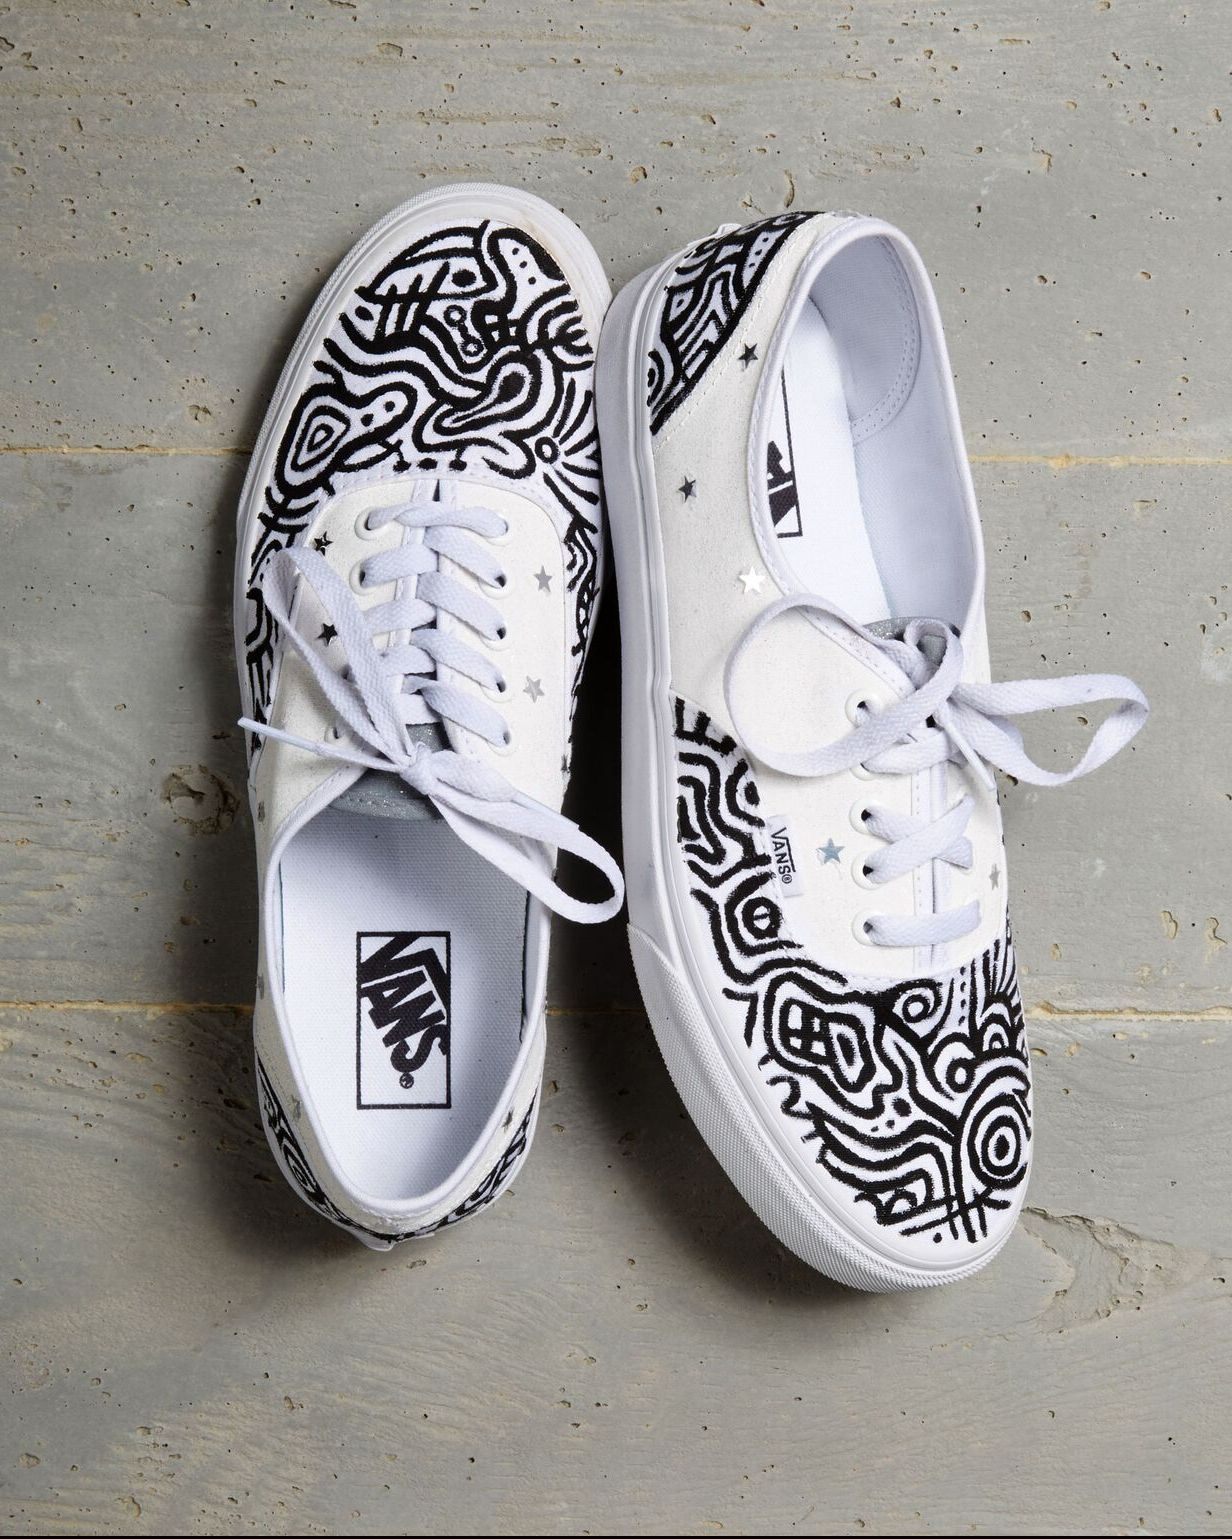 412a0825c958 Shoes by 2018 Vans Custom Culture ambassador